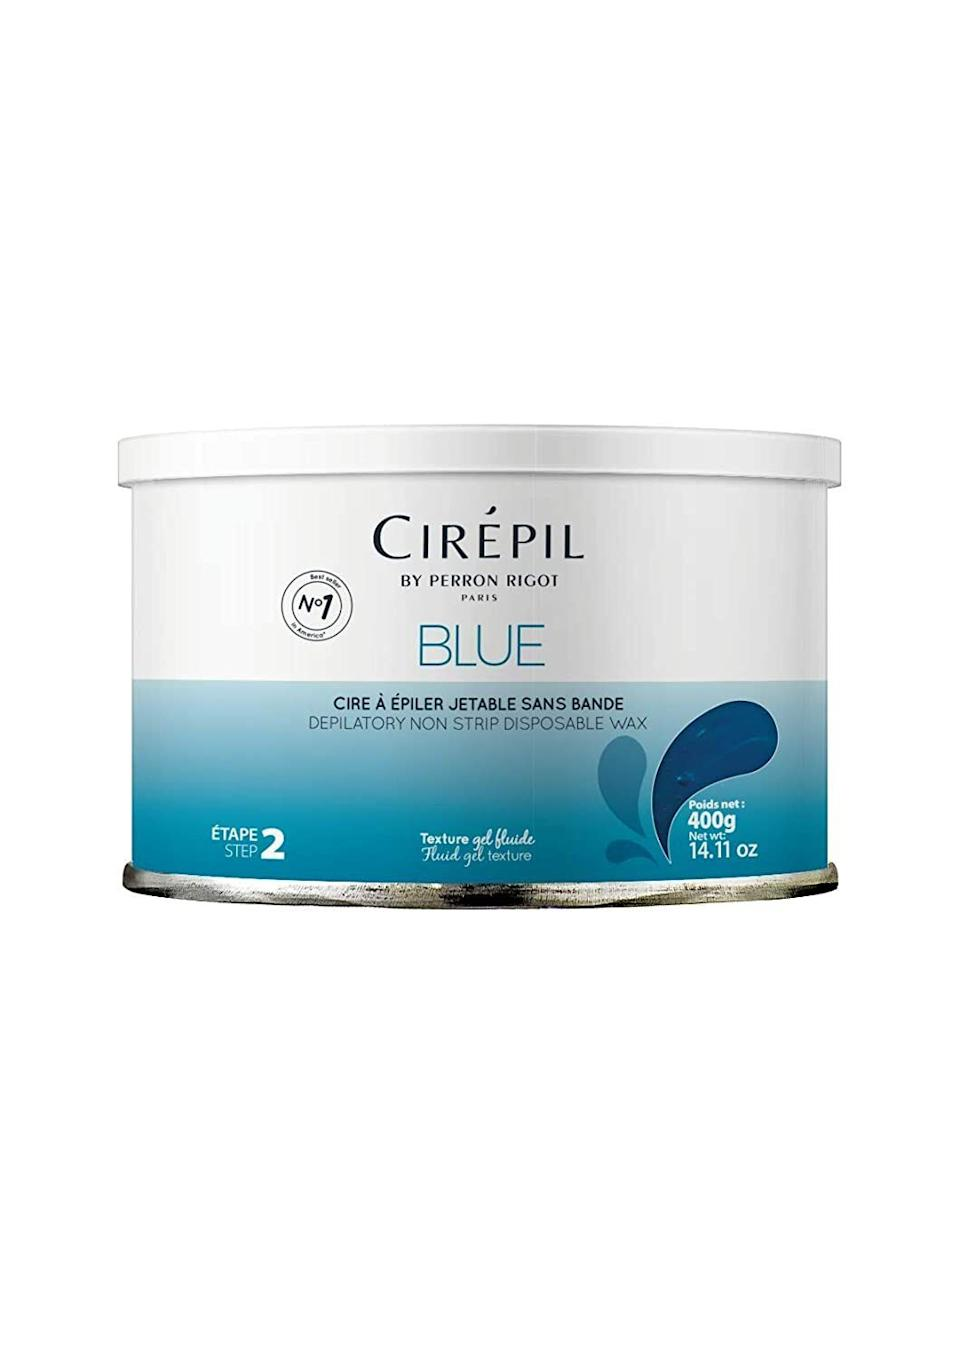 """This gentle hard wax easily removes both the coarsest and finest of hairs in a matter of minutes, leaving you with skin so smooth that you're going to have to sit on your hands stop yourself from stroking your underarms and legs in public.This stuff is used in a lot of high-end salons, too, so this tin truly pays for itself in """"trips not taken to get professionally waxed.""""<br /><br /><strong>Promising review:</strong>""""<strong>This is the best hard wax I have ever tried! I</strong>prefer to use hard wax over any other wax hands down. I use it on myself and on my friends, family and clients. I have found that this works best for me when used on clean, oiled (lightly) skin. Using a light oil helps prevent the wax from sticking to & pulling on the skin, therefore only grabbing the hair.<strong>Easy to use and easy cleanup.</strong>I have found my holy grail hard wax and will be repurchasing every time I start getting low."""" —<a href=""""https://www.amazon.com/gp/customer-reviews/R2A7JYWL2O8FZR?&linkCode=ll2&tag=huffpost-bfsyndication-20&linkId=c9807efd43e1dd1cc45142305a380057&language=en_US&ref_=as_li_ss_tl"""" target=""""_blank"""" rel=""""noopener noreferrer"""">Stillkickin</a> <br /><br /><strong>Get it from Amazon for <a href=""""https://www.amazon.com/dp/B008L0AH4U?&linkCode=ll1&tag=huffpost-bfsyndication-20&linkId=c0d6f407bc734ee9986623eed68f6ed5&language=en_US&ref_=as_li_ss_tl"""" target=""""_blank"""" rel=""""noopener noreferrer"""">$24.99</a>.</strong>"""